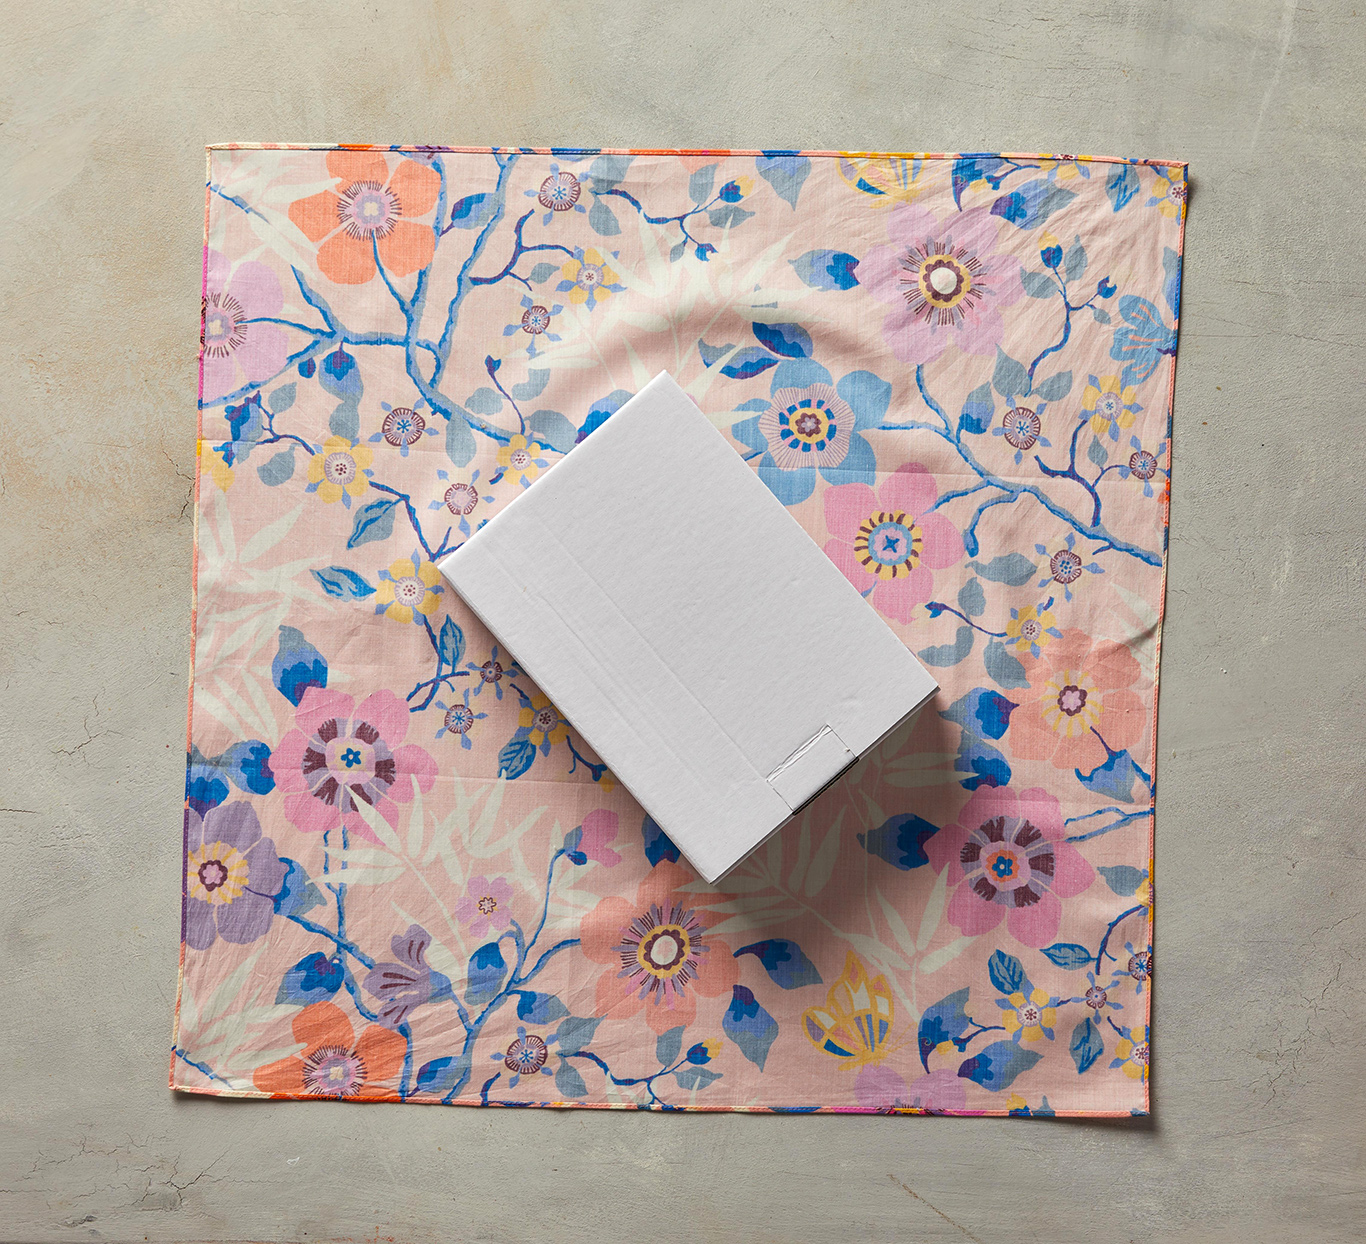 white box sitting diagonally on pink square fabric